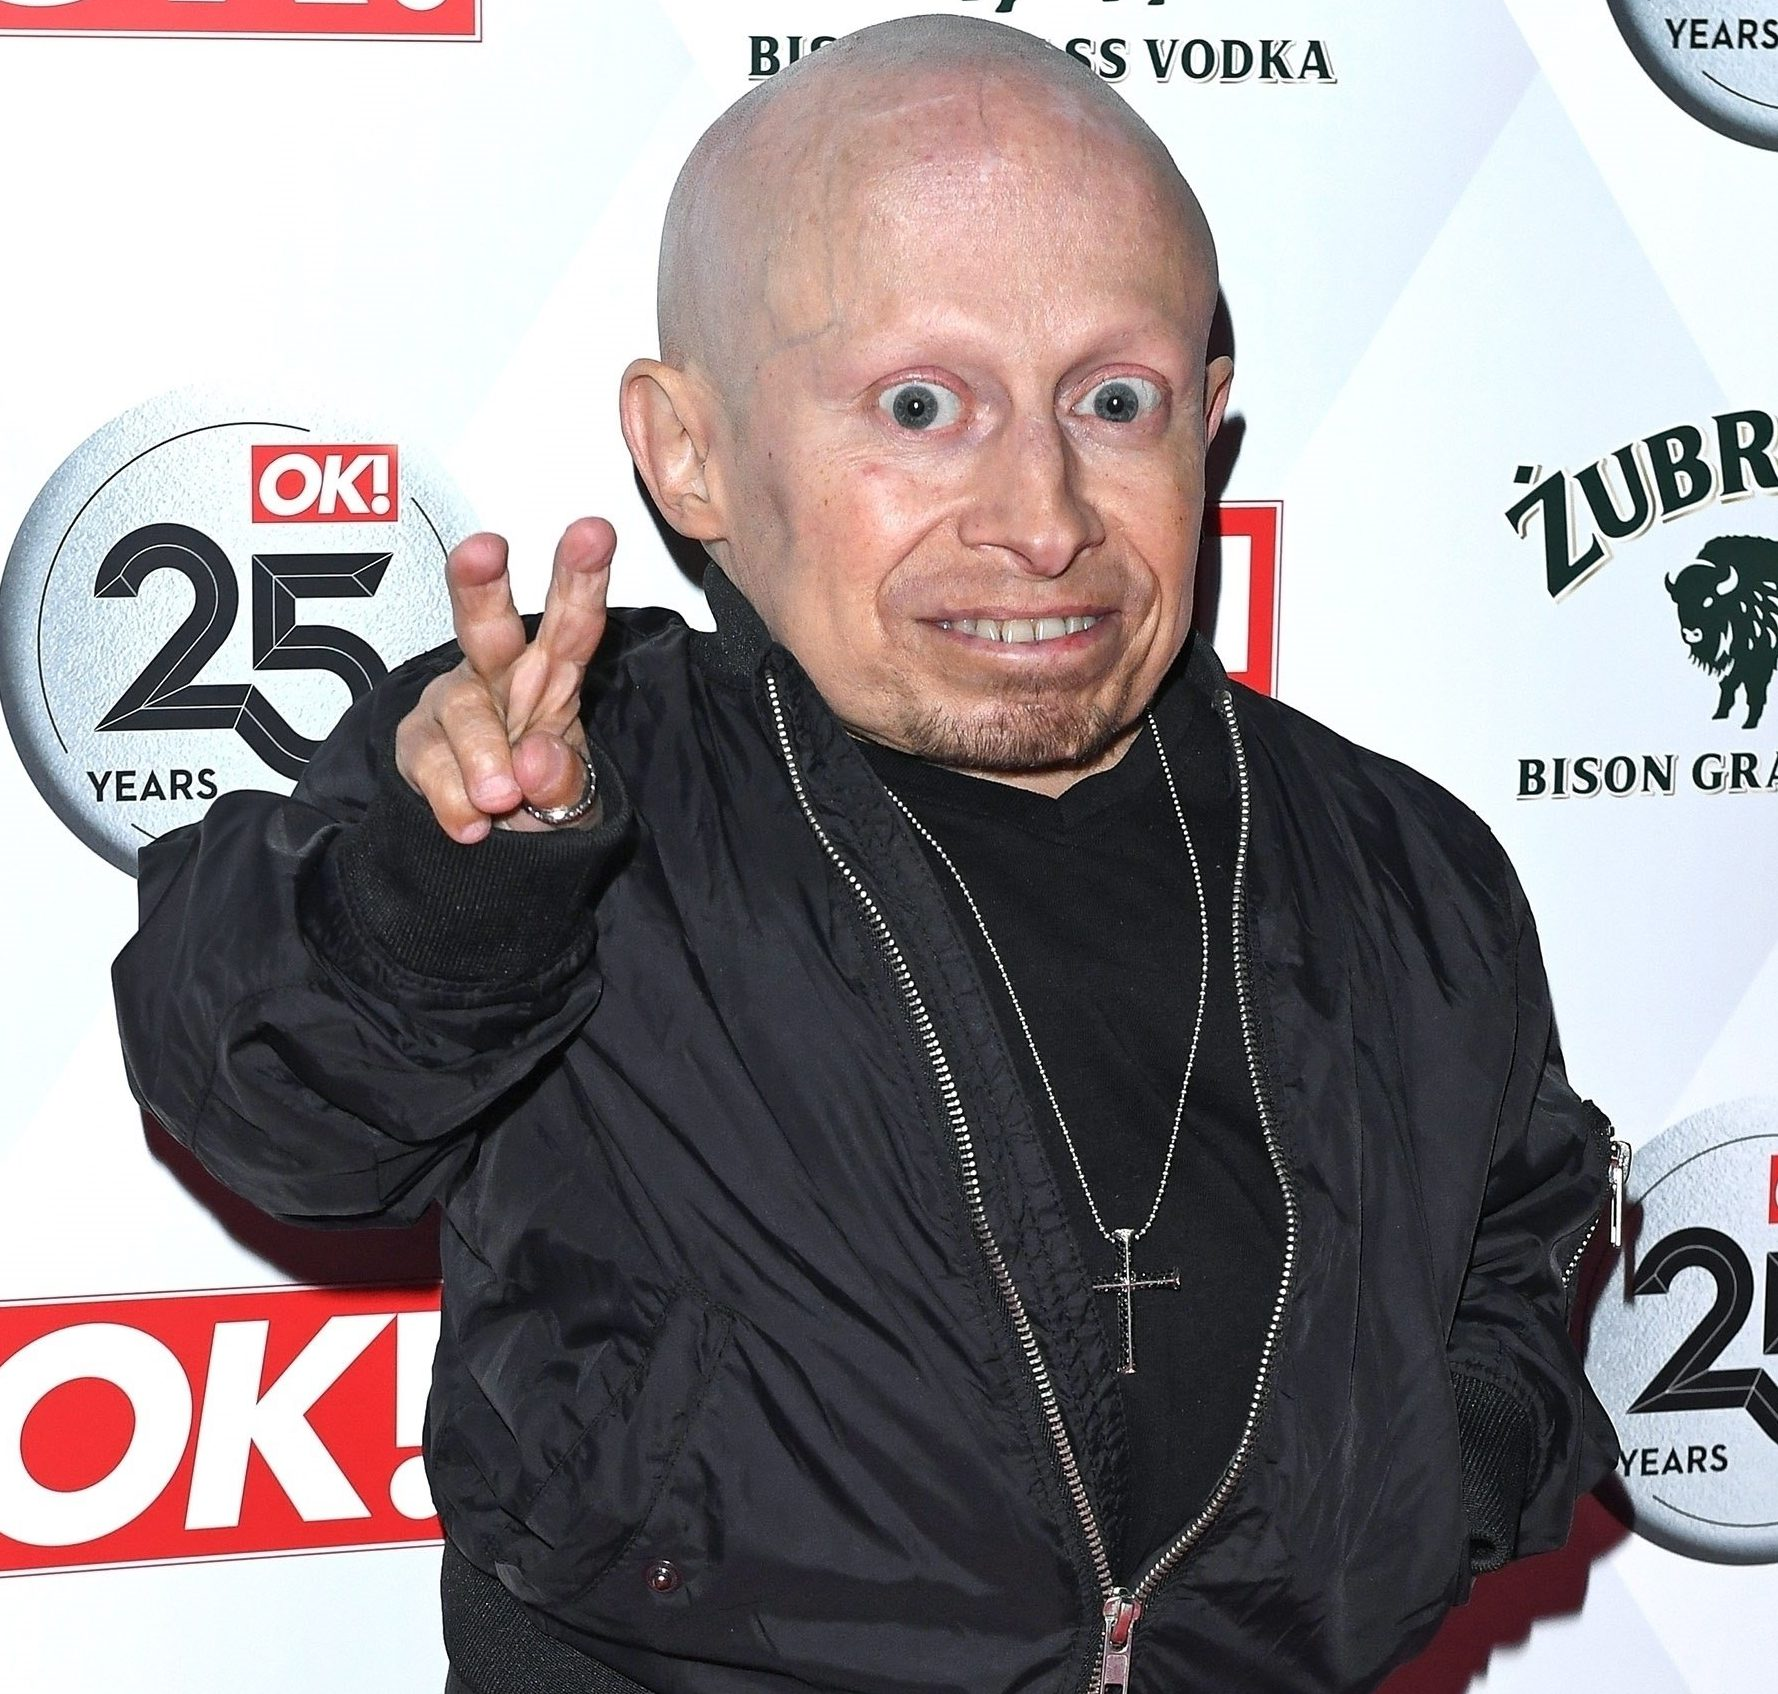 Verne Troyer smiling during last appearance before death